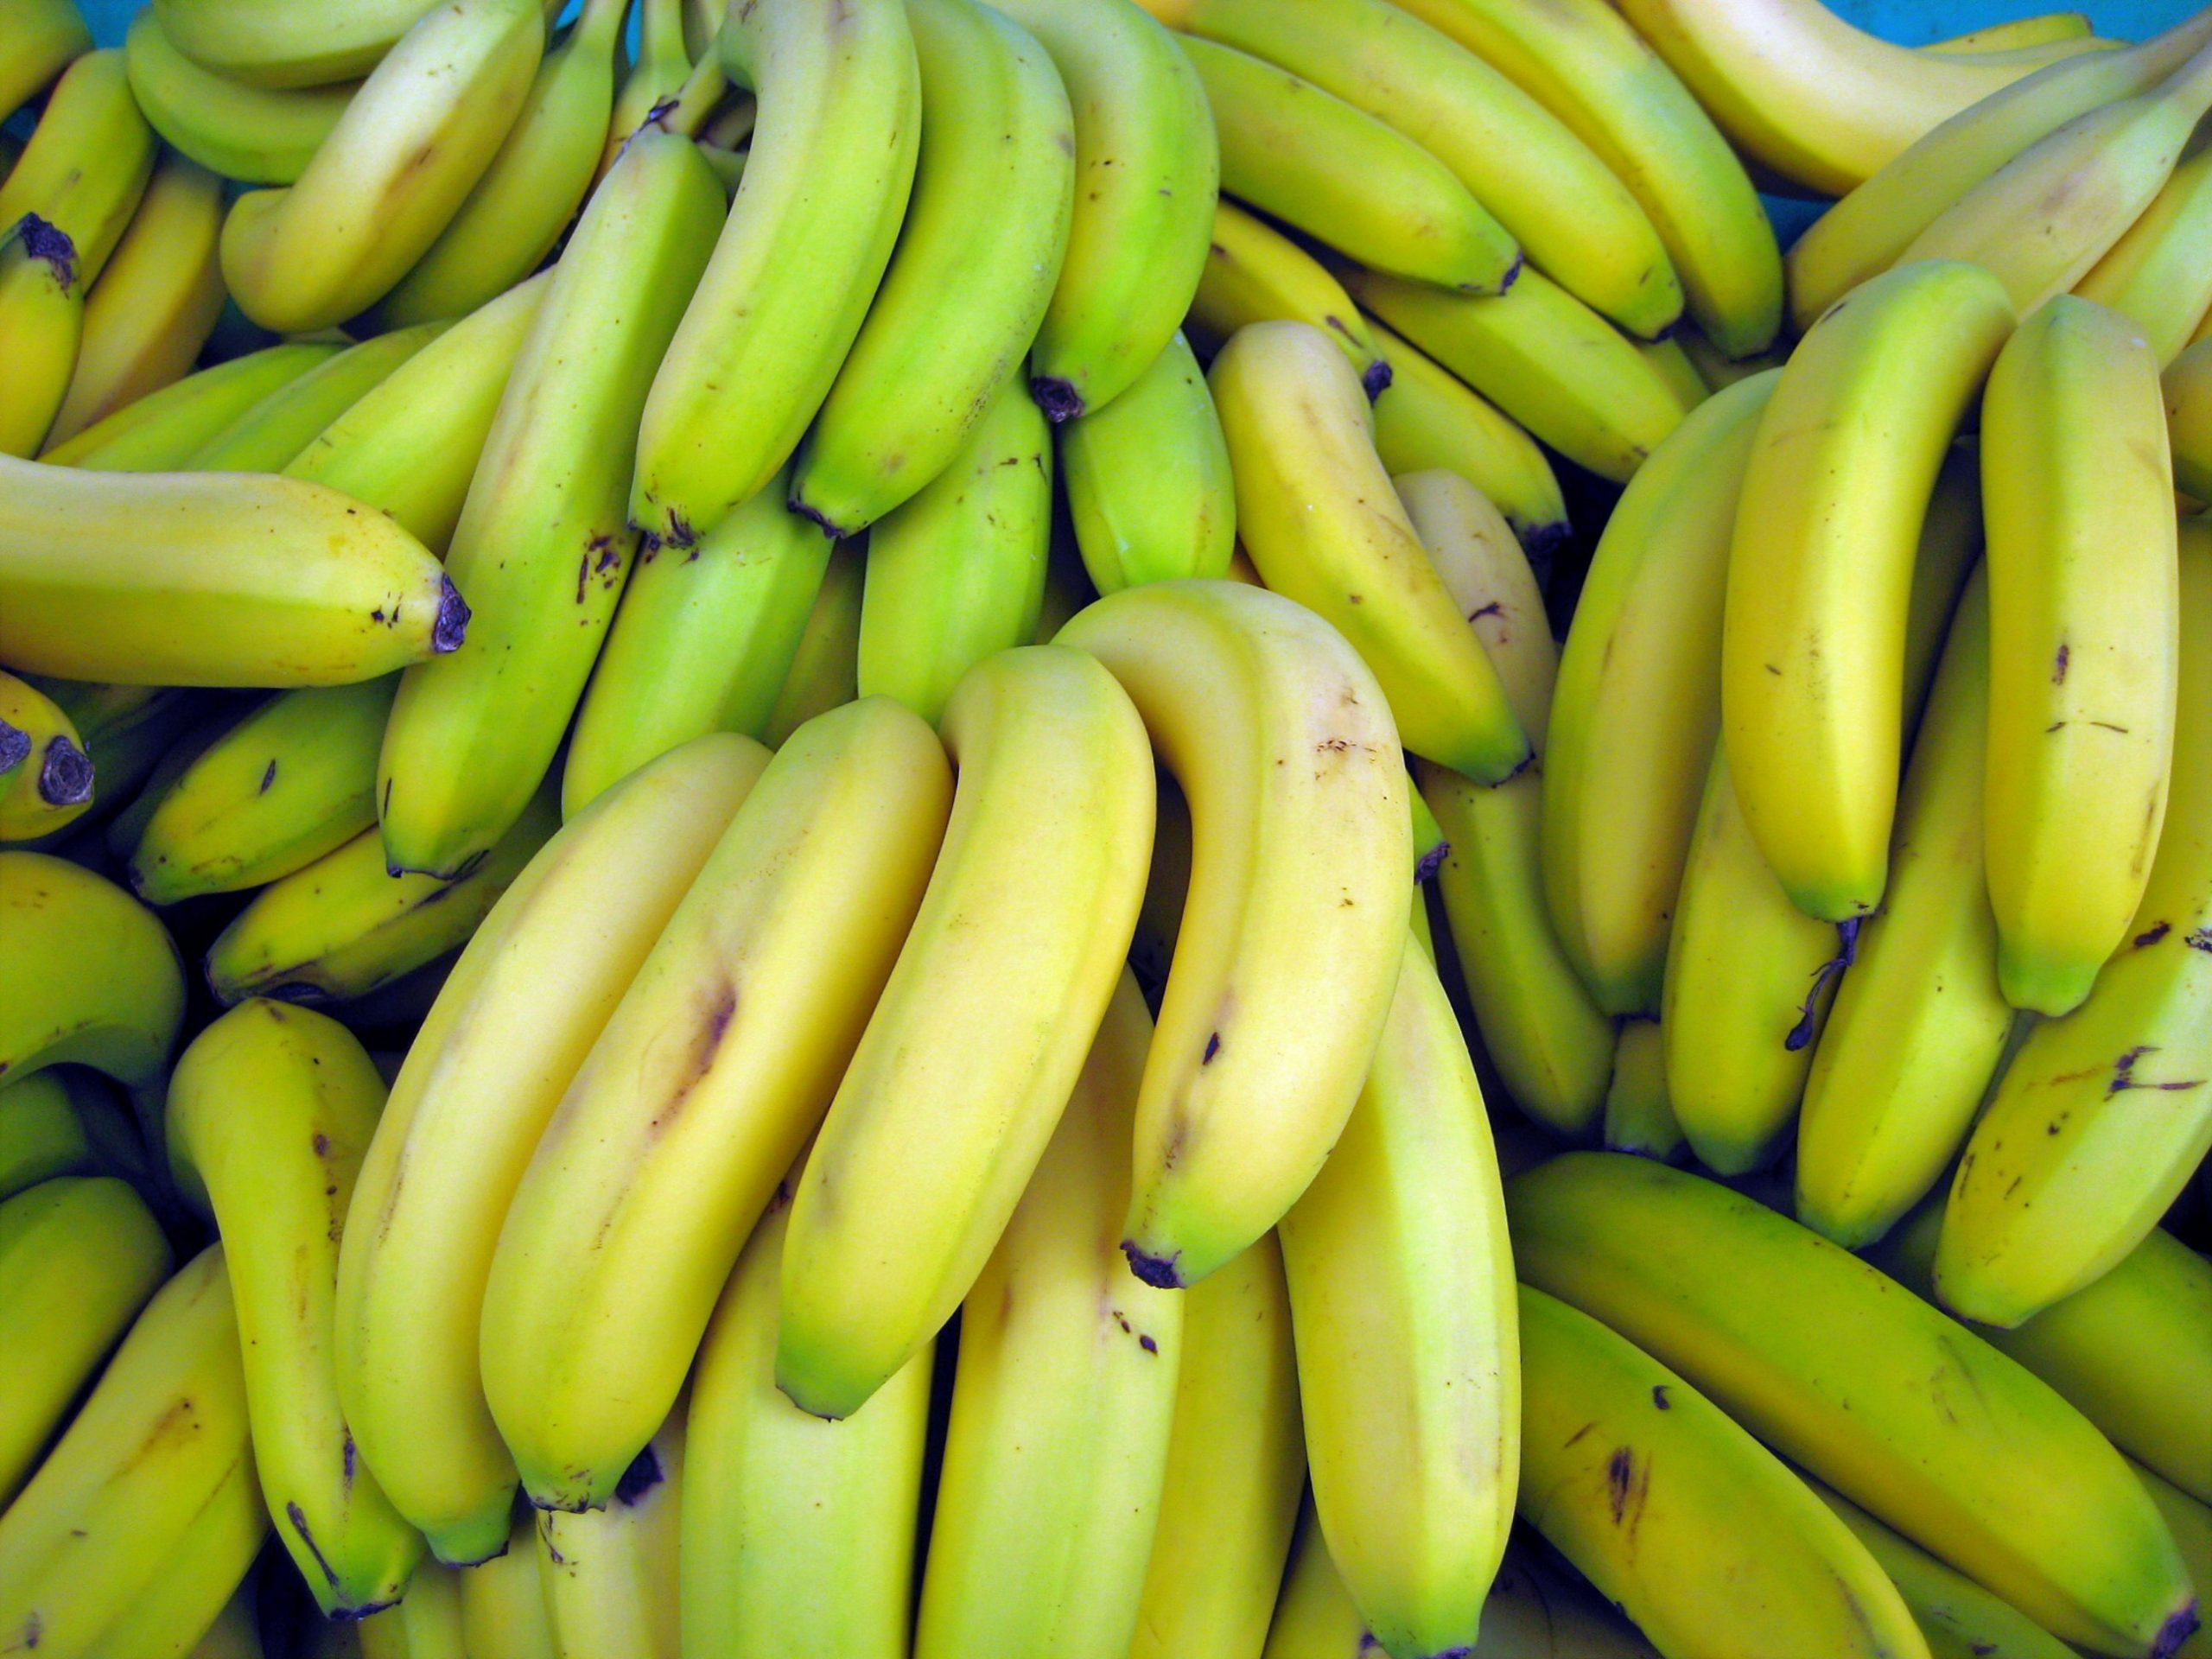 Banana Extinction Is Possible, but Science Might Save Us